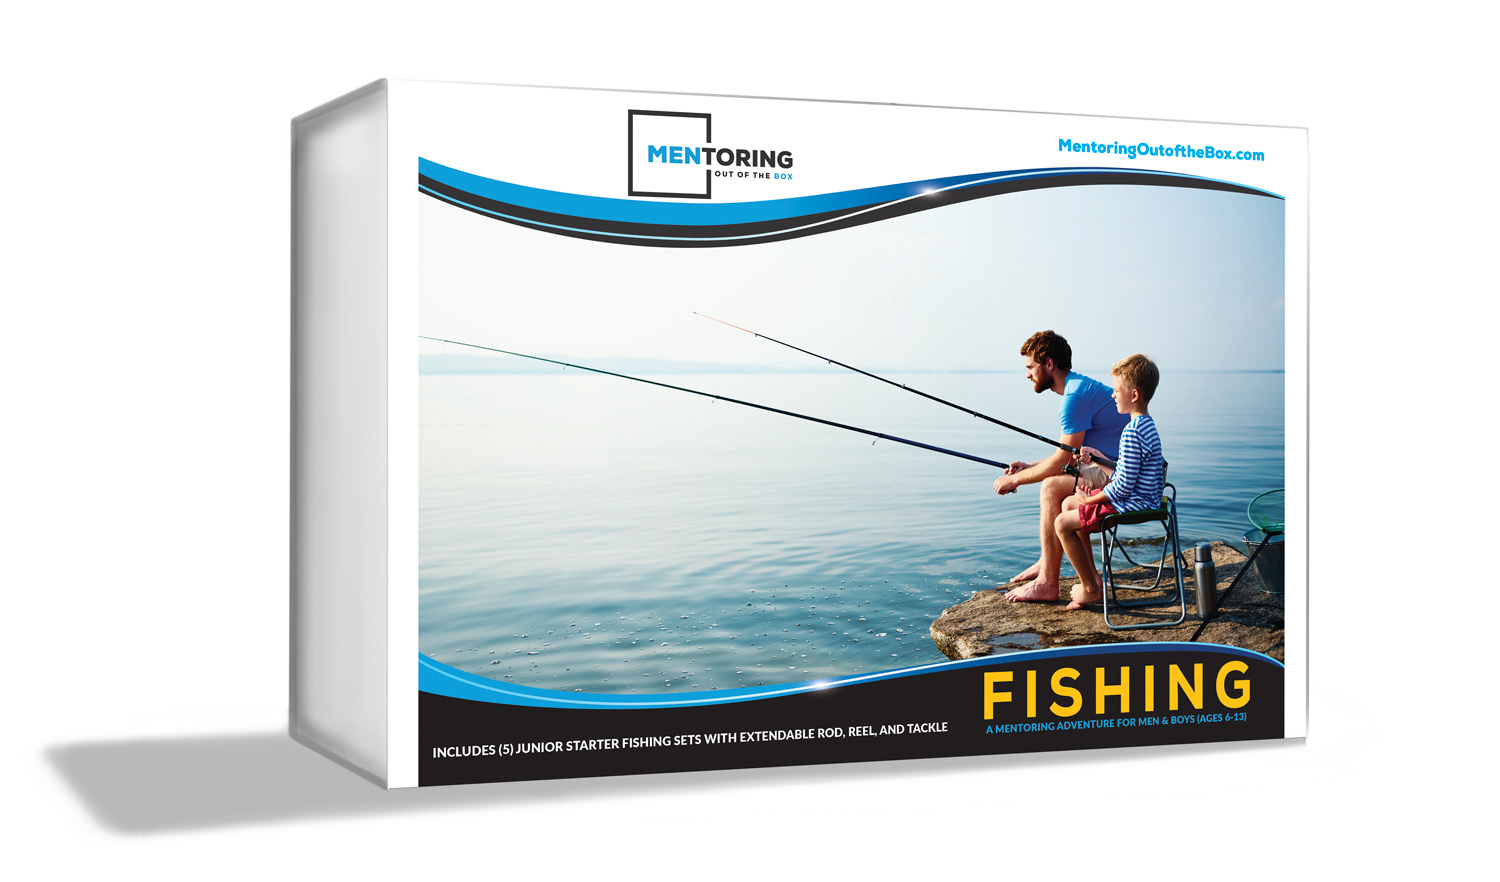 Mentoring Out of the Box - Fishing - is for up to (5) boys to go on a fishing adventure!